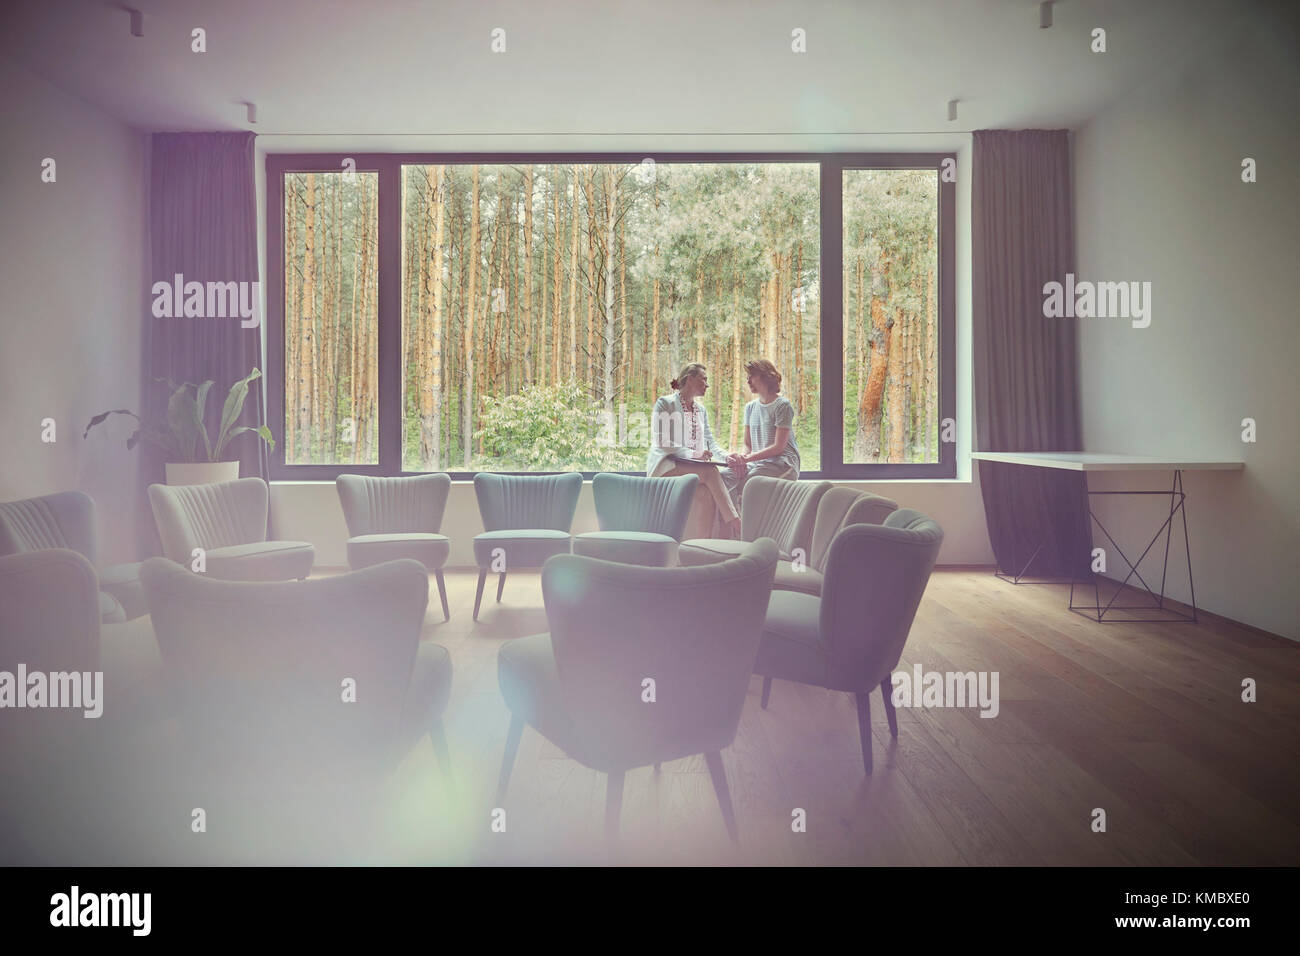 Women talking at window in group therapy room - Stock Image